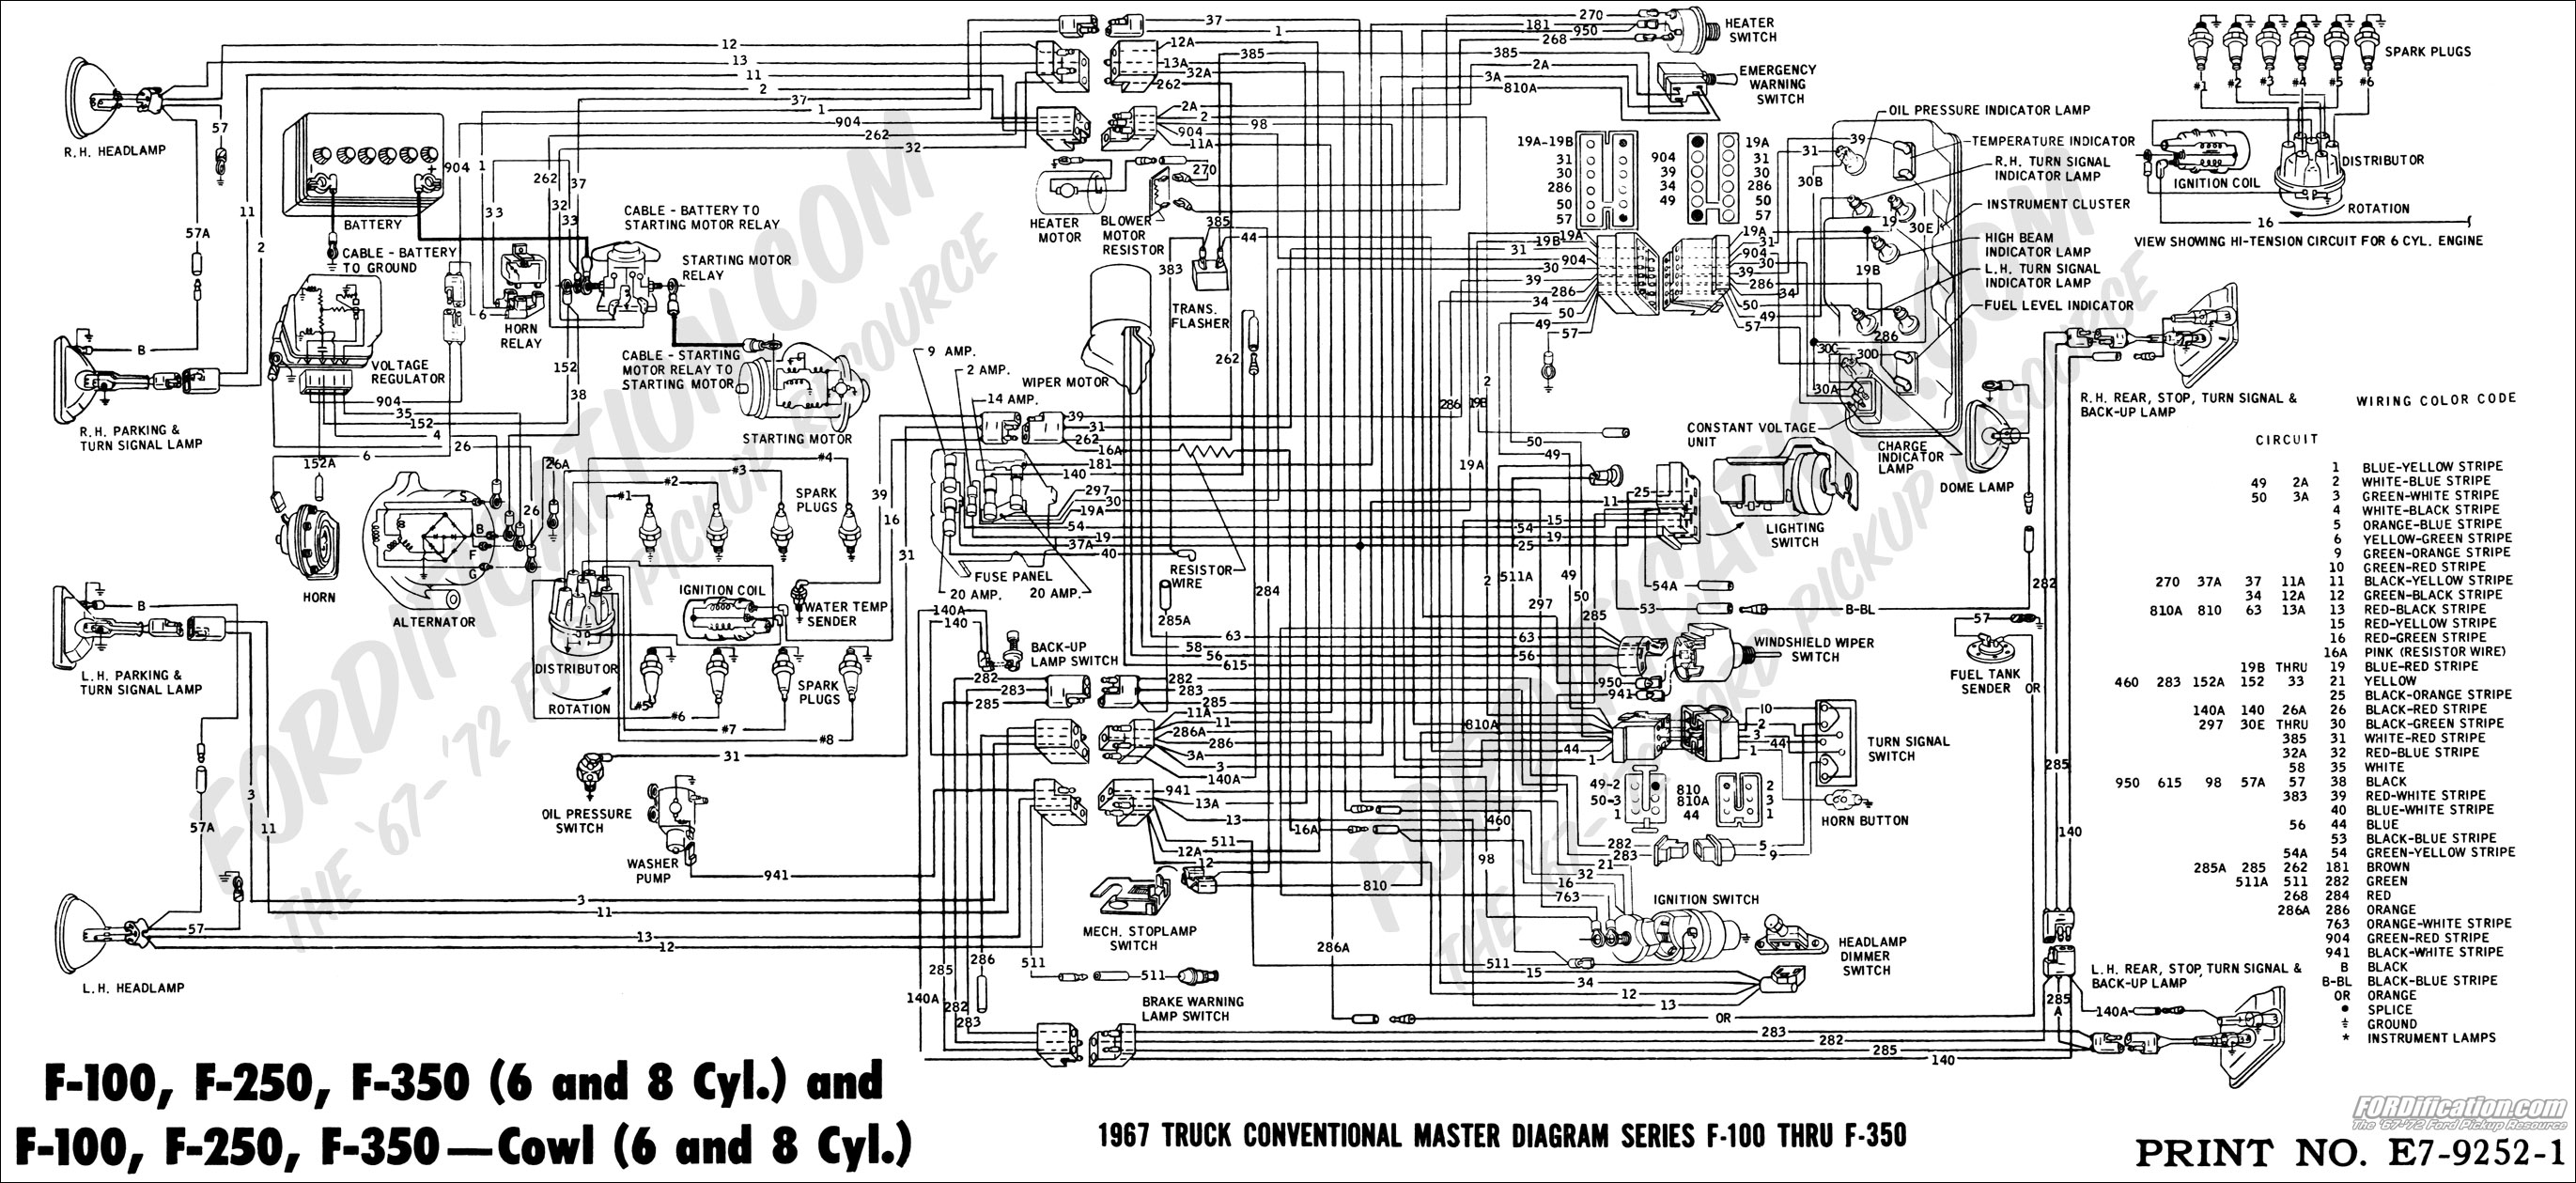 67masterdiagram ford truck technical drawings and schematics section h wiring ford f150 wiring diagram free at soozxer.org